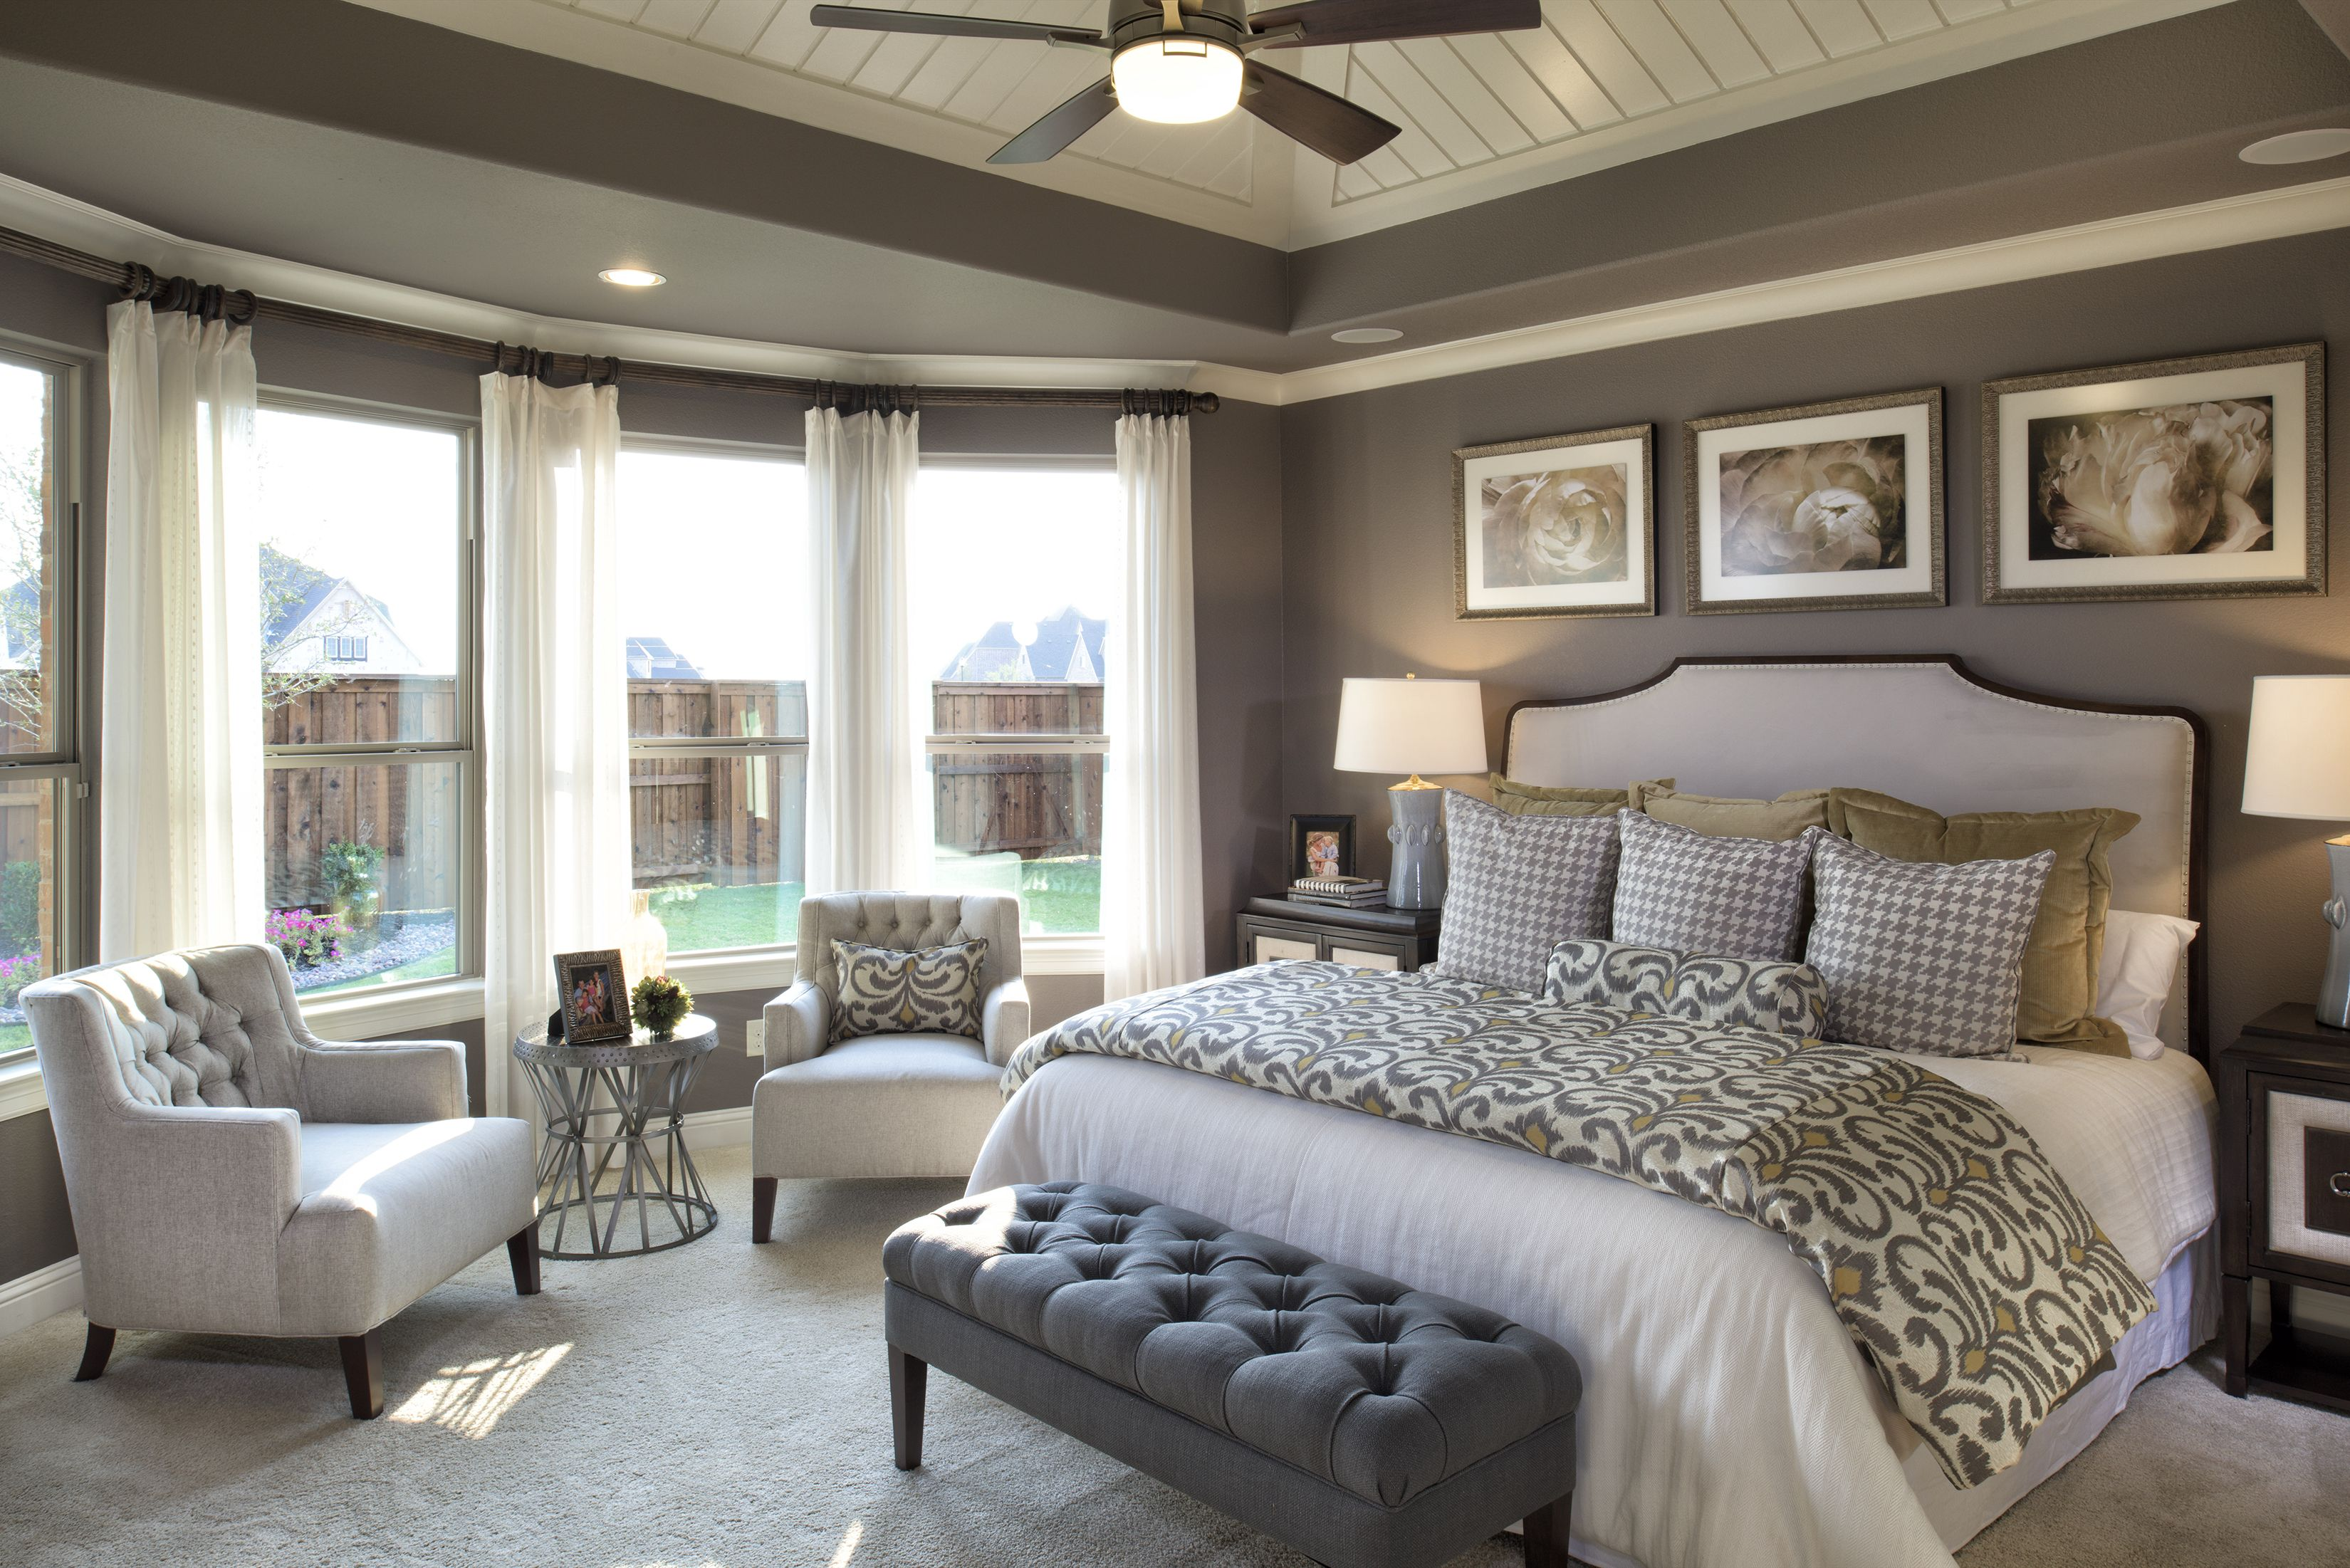 Pure elegance! #master #bedroom | My Dream Home in 2018 | Pinterest on gray decorating ideas, grey master bedroom sets, grey teen bedroom, beautiful master bedroom ideas, gray bedroom ideas, unique master bedroom ideas, grey bedroom design ideas, small master bedroom ideas, grey master bathroom ideas, grey master bedroom furniture, black and grey bedroom ideas, grey master bedroom design, grey chairs for bedroom, grey master lamps, grey purple bedroom decorating ideas, purple grey master bedroom ideas, grey master bed, grey bedroom colors, grey bedroom furniture ideas, grey yellow bedroom decorating ideas,